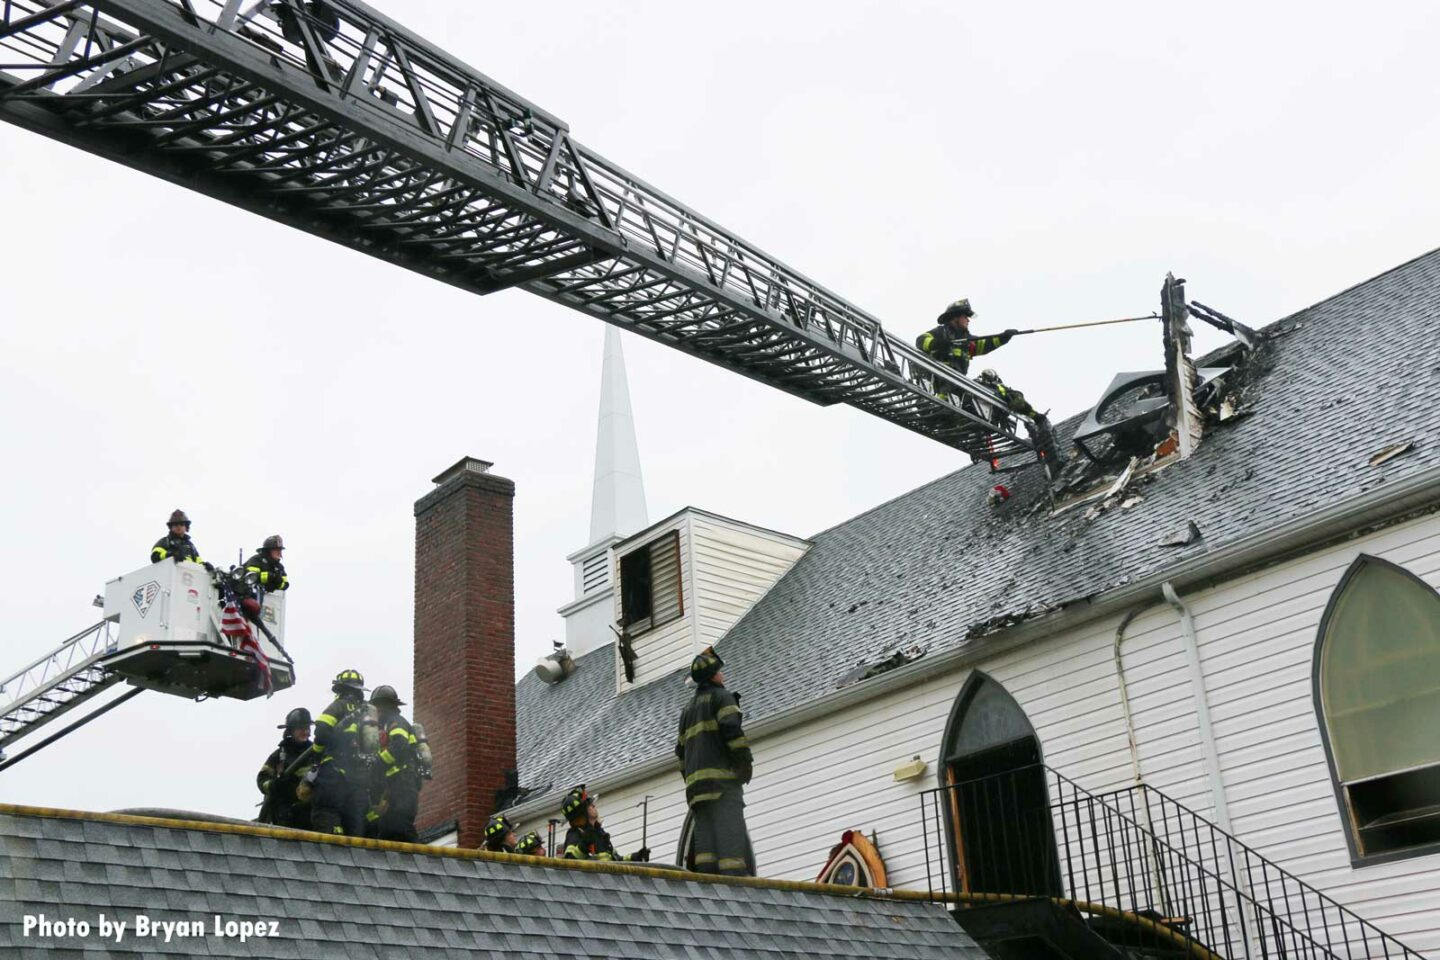 Aerial device extended to roof of church with firefighter working